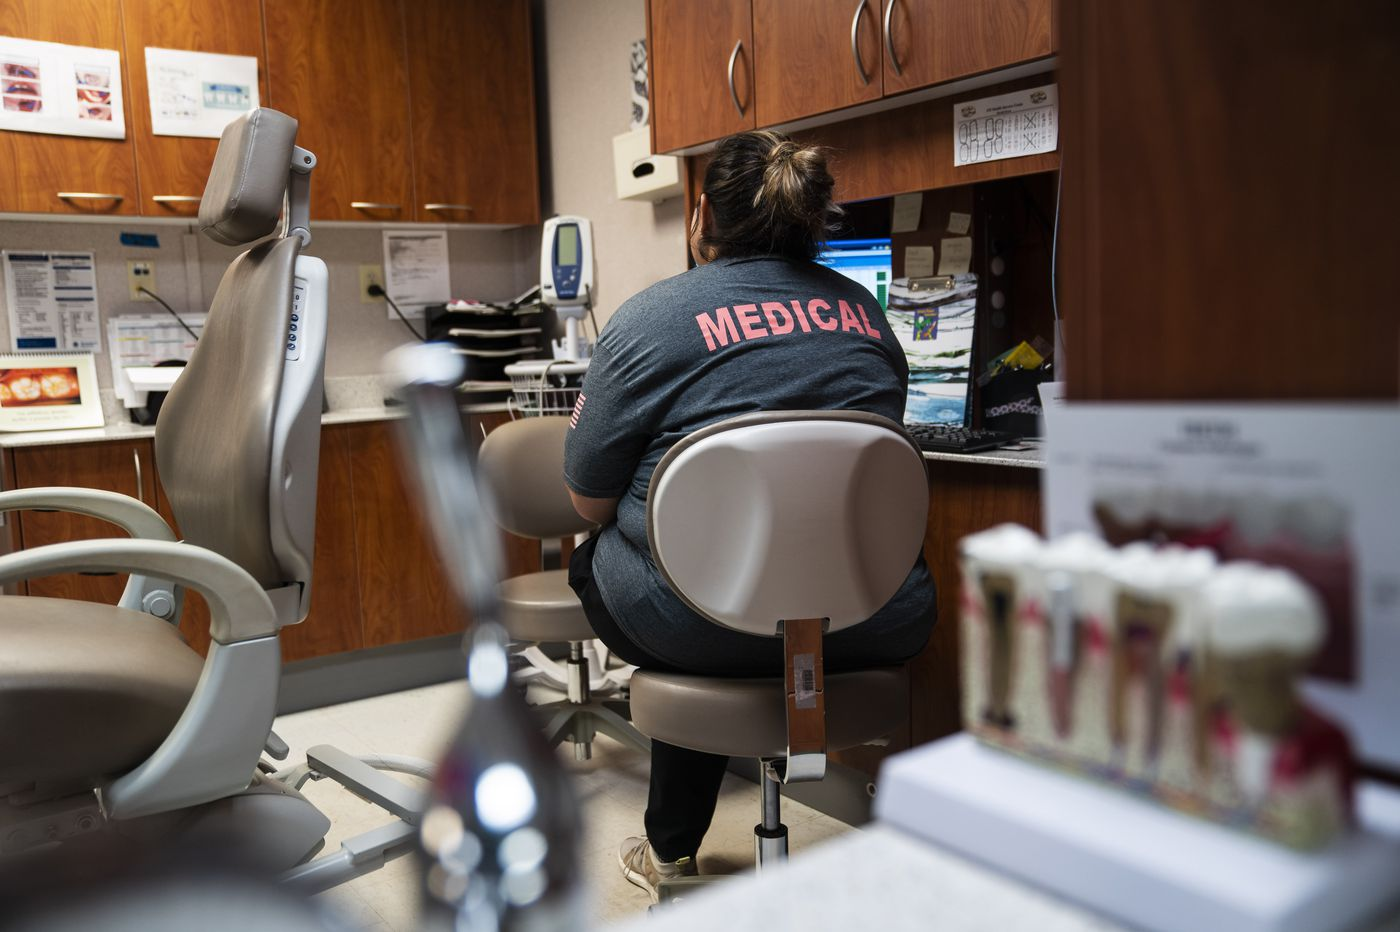 Feds reverse decision ending immigrant medical relief